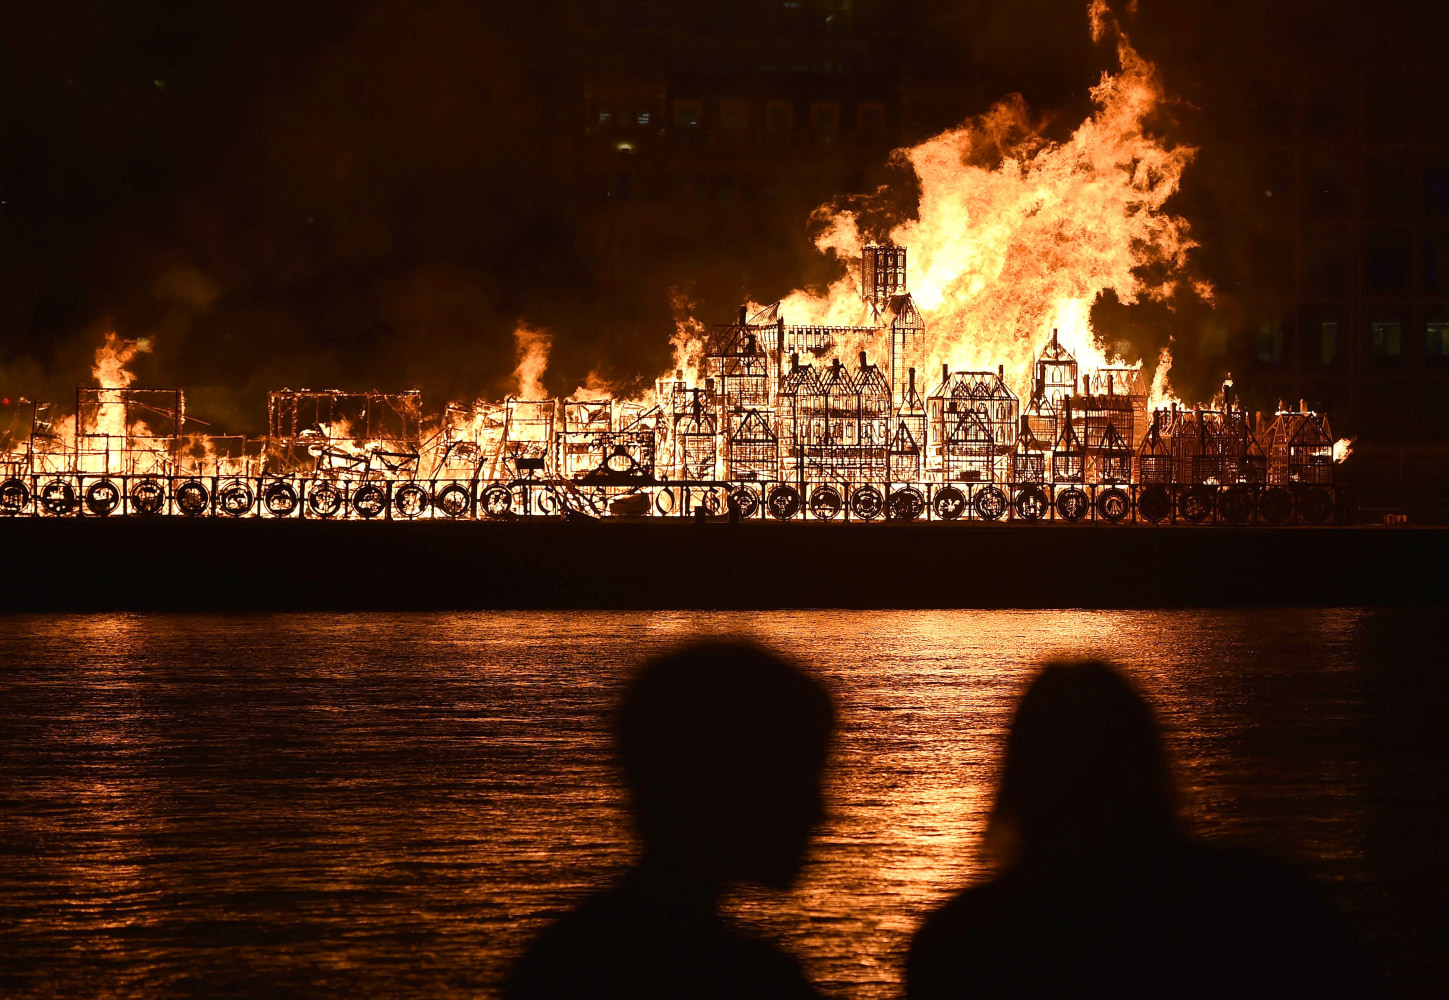 London Fire The spectacle marked t...